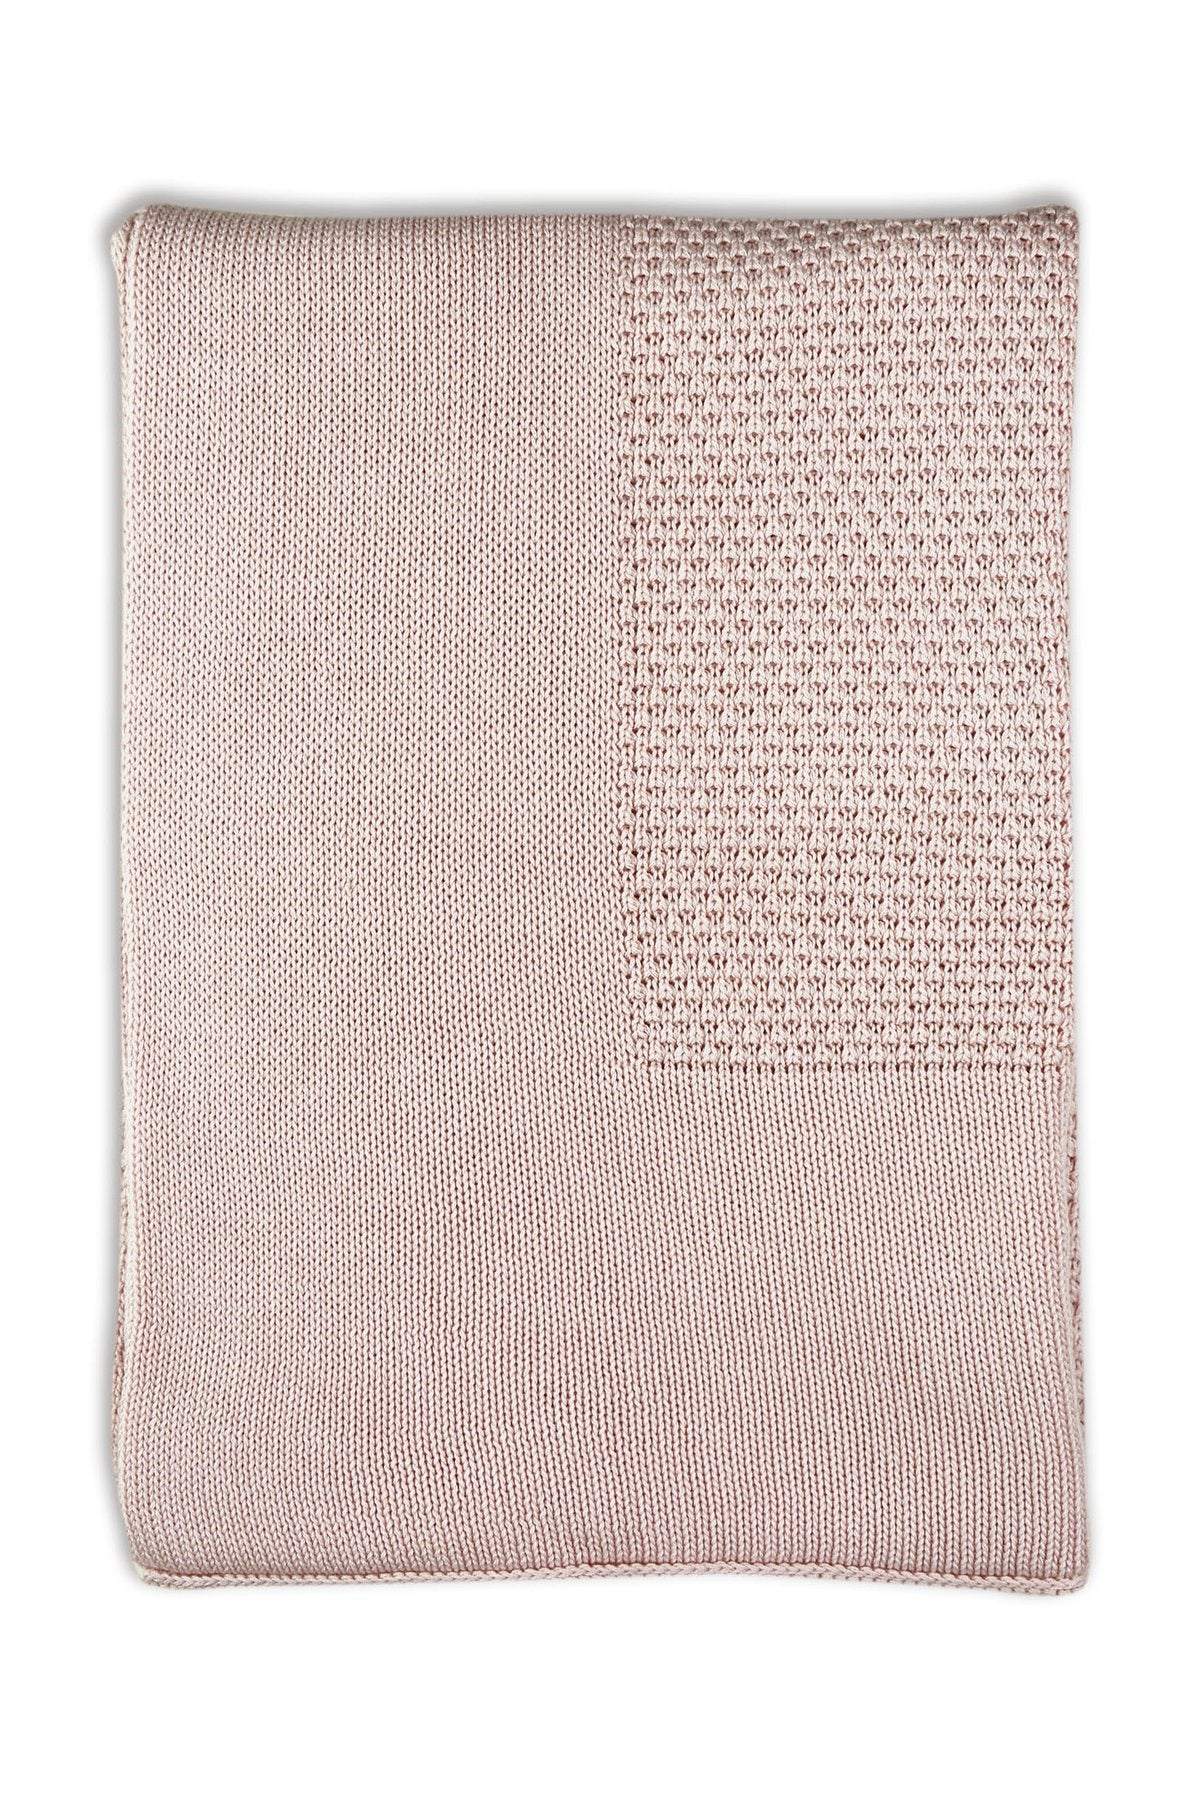 Little Bamboo Textured Knit Blanket - Dusty Rose